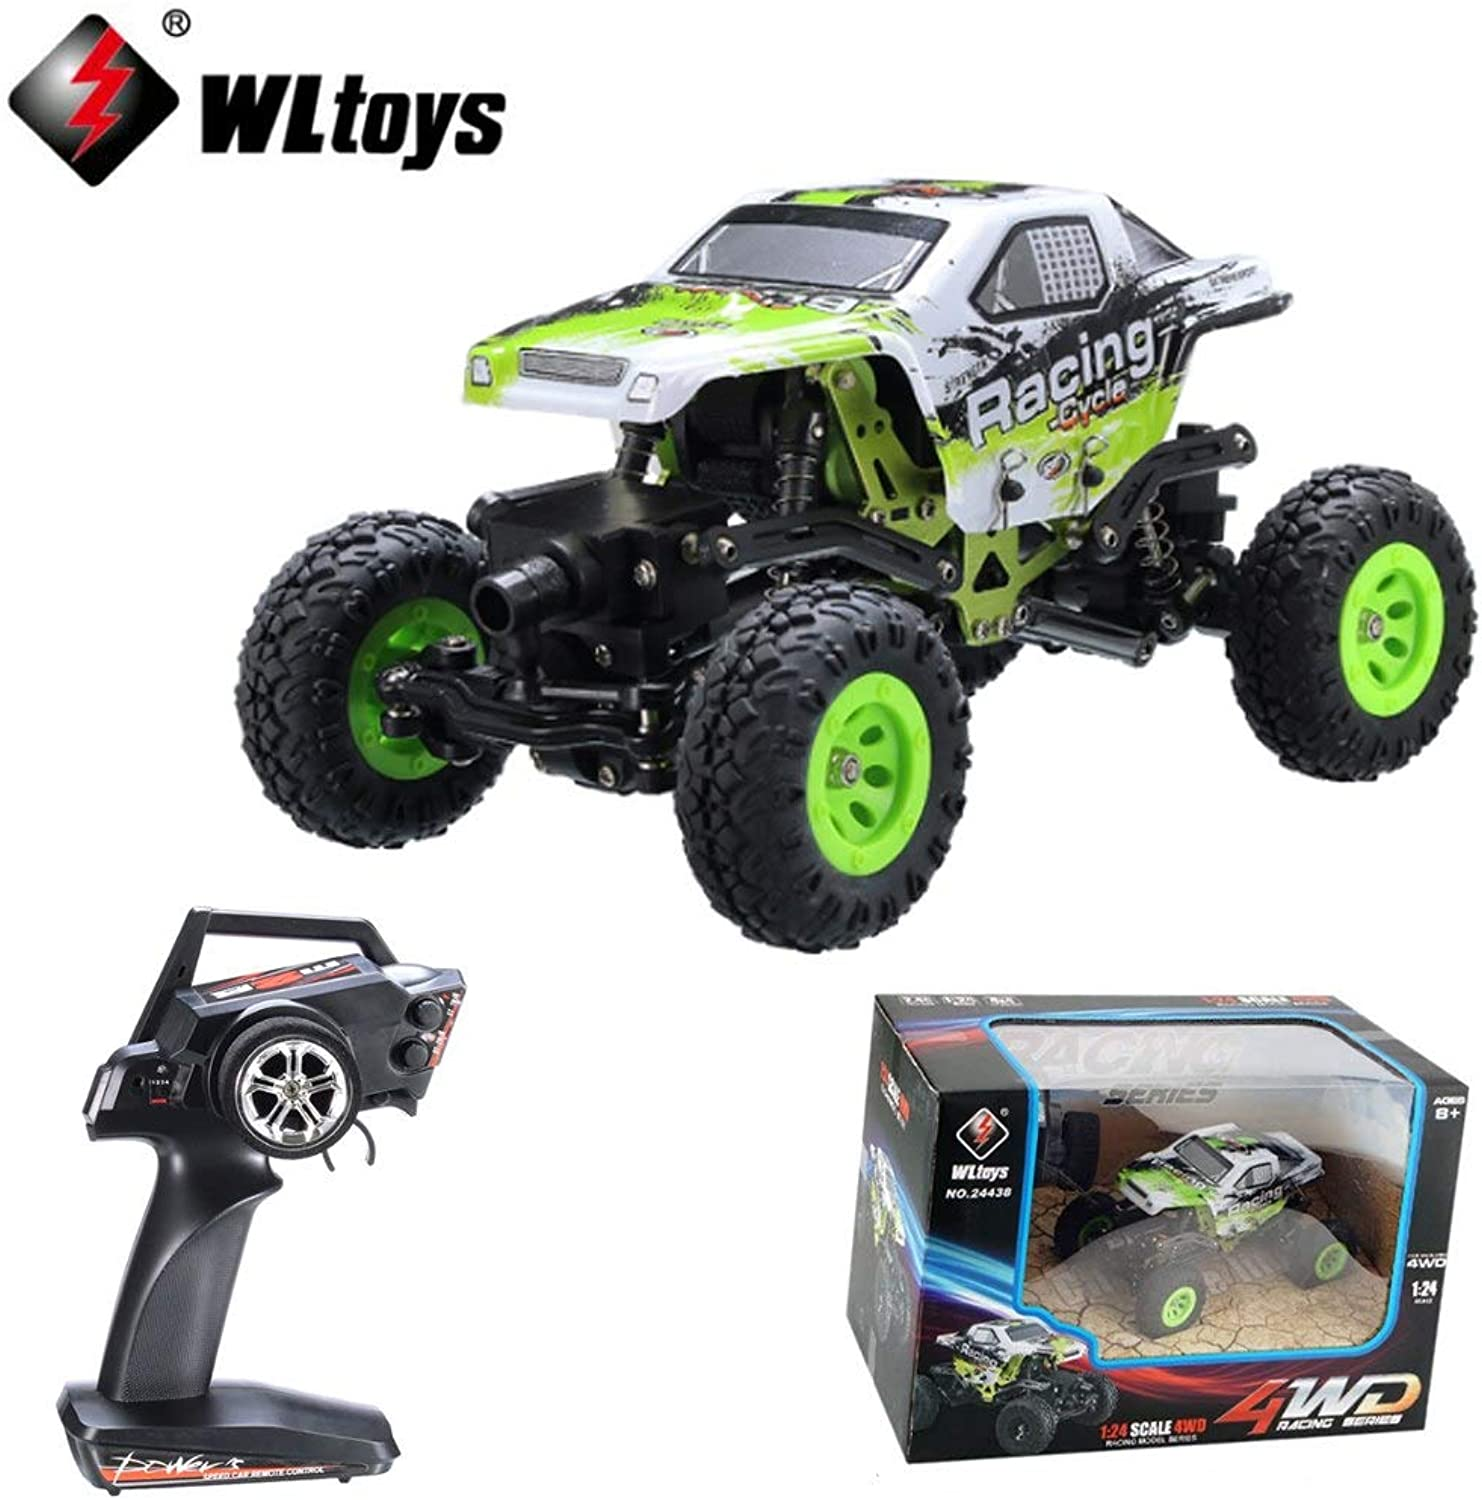 Generic 1 Set Wltoys 24438 1 24 2.4G 4WD OffRoad Remote Control Car Toys car Climbing RC Racing Car Radio Controlled Boys Toy